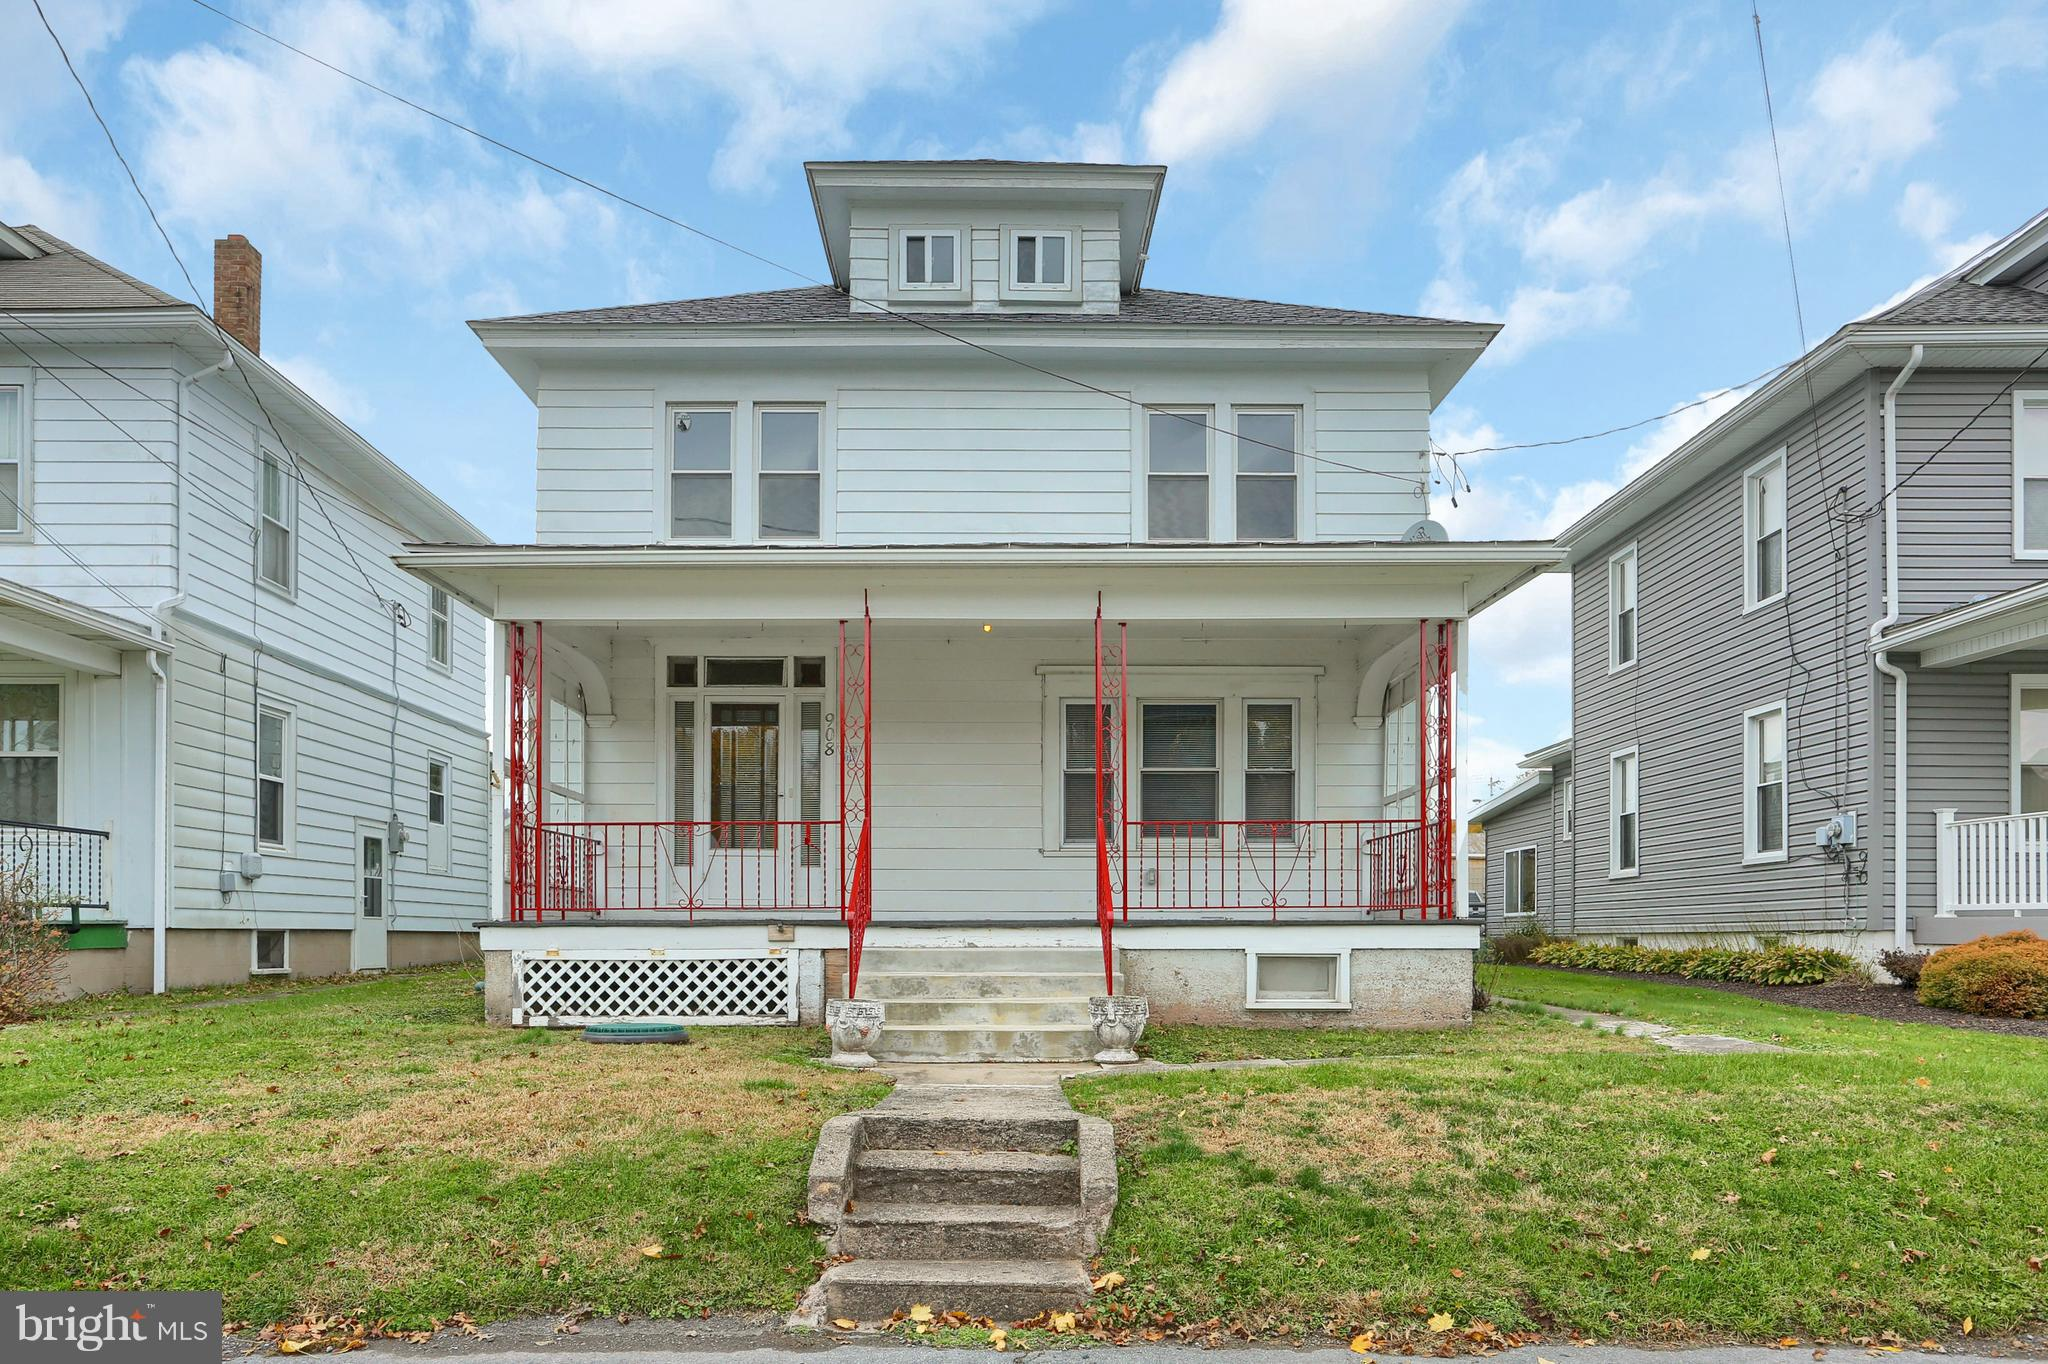 908 W MAPLE STREET, VALLEY VIEW, PA 17983